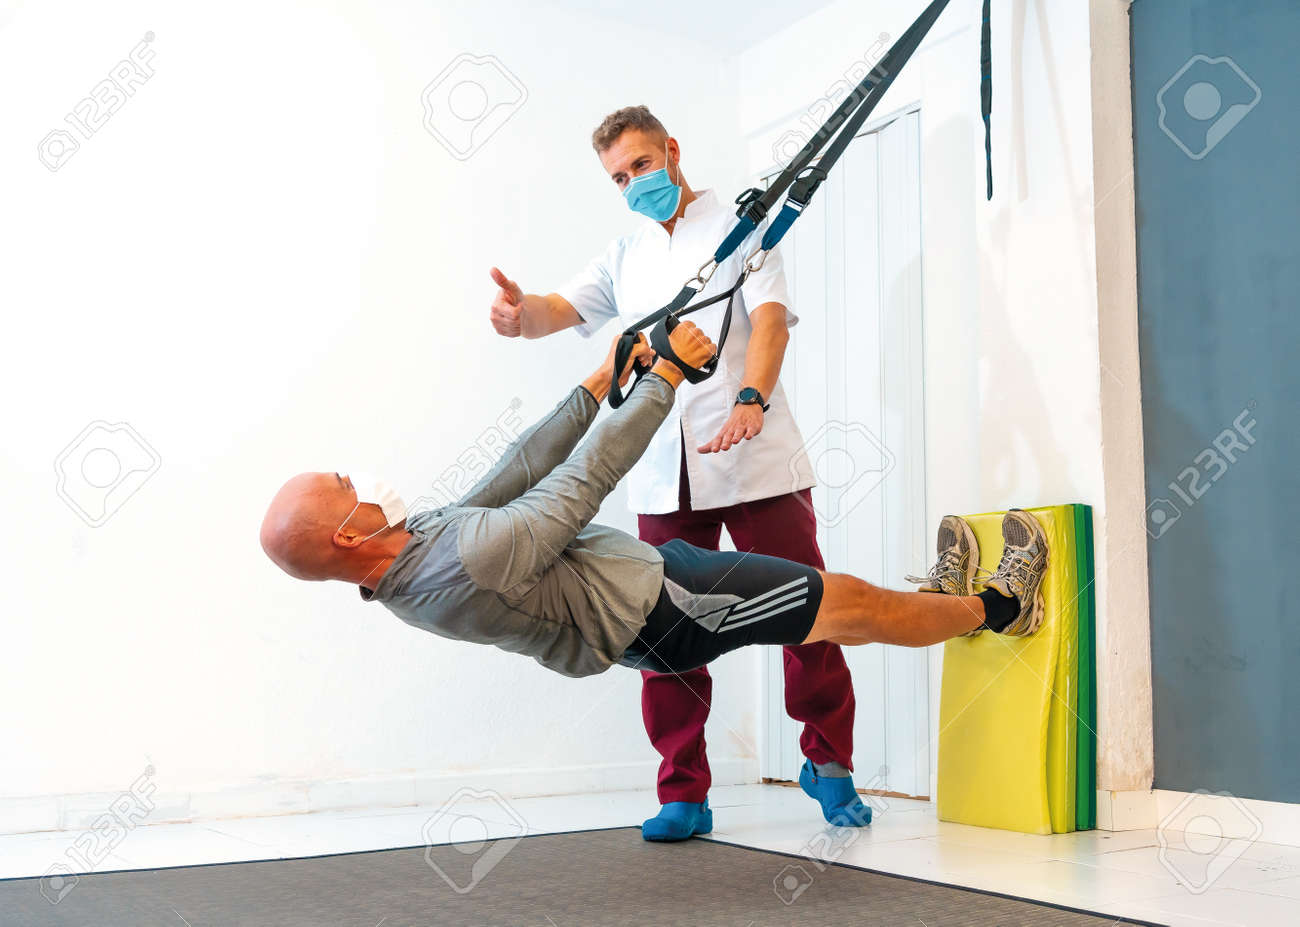 Physiotherapist with face mask and a patient exercising the body. Physiotherapy with protective measures for the Coronavirus pandemic, COVID-19. Osteopathy, sports quiromassage - 158753896